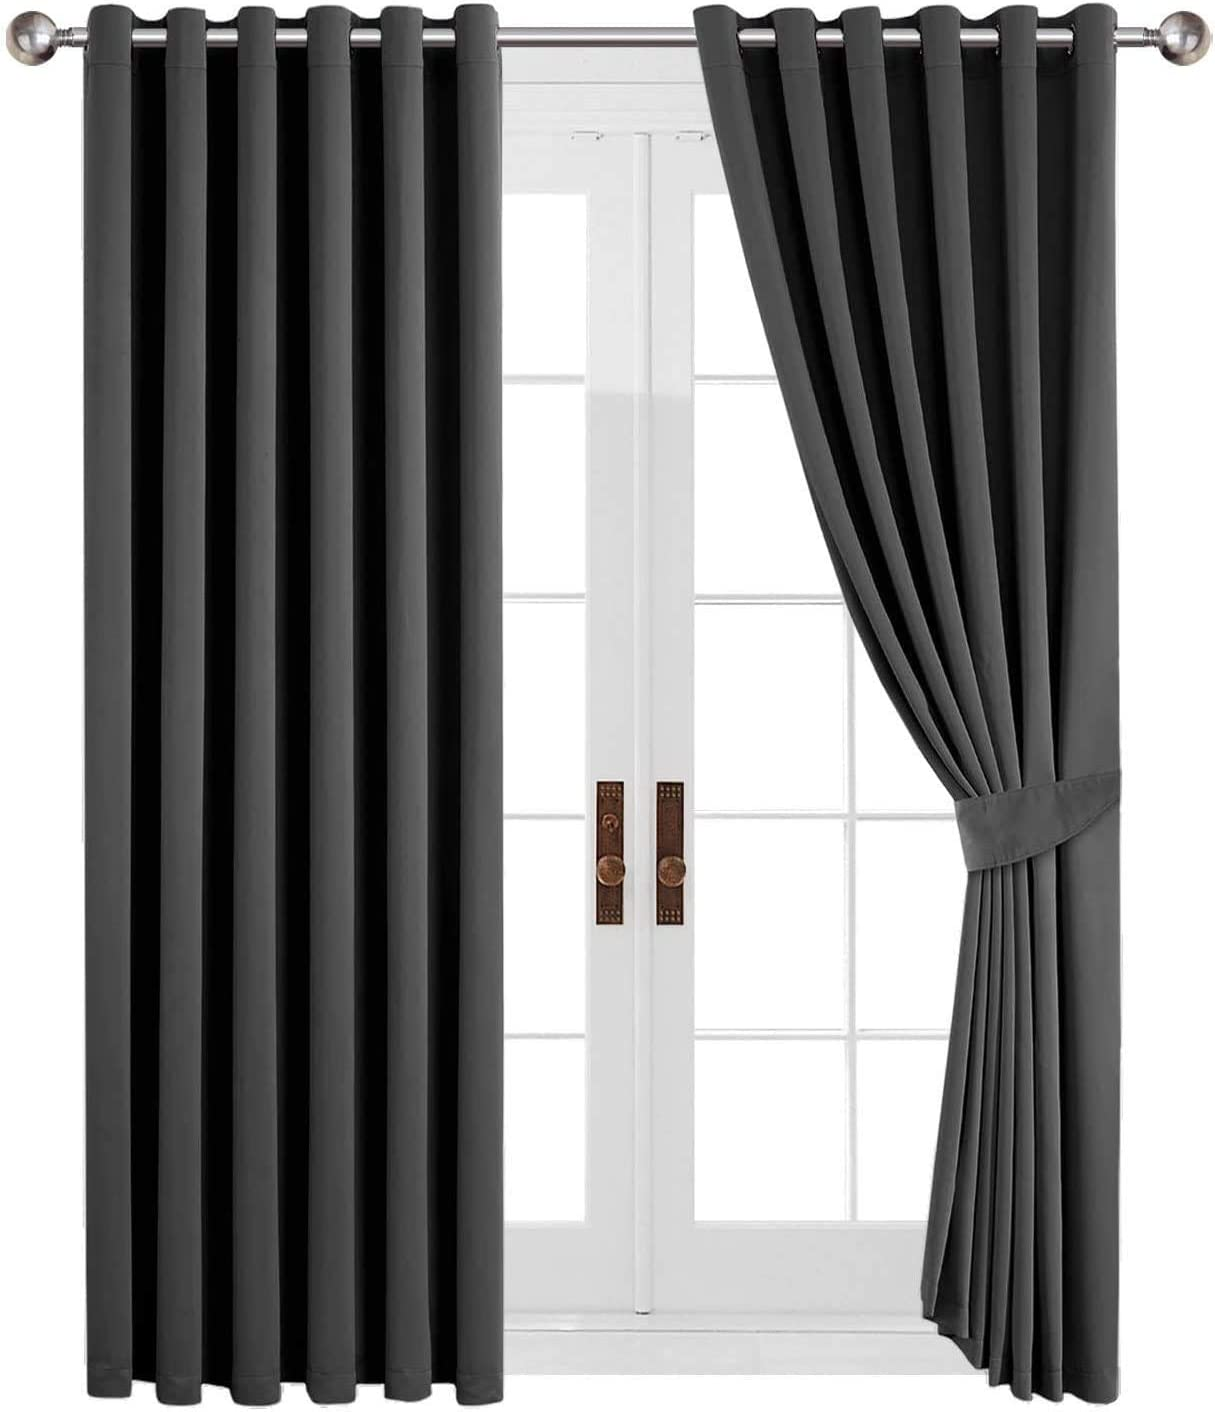 Ah Homeware Window Treatments Eyelet Readymade Blackout Curtains Thermal Insulated Top Ring For Windows Curtains 2 Tiebacks Grey 46 Width X 54 Drop 117 X 137 Cm Amazon Co Uk Kitchen Home